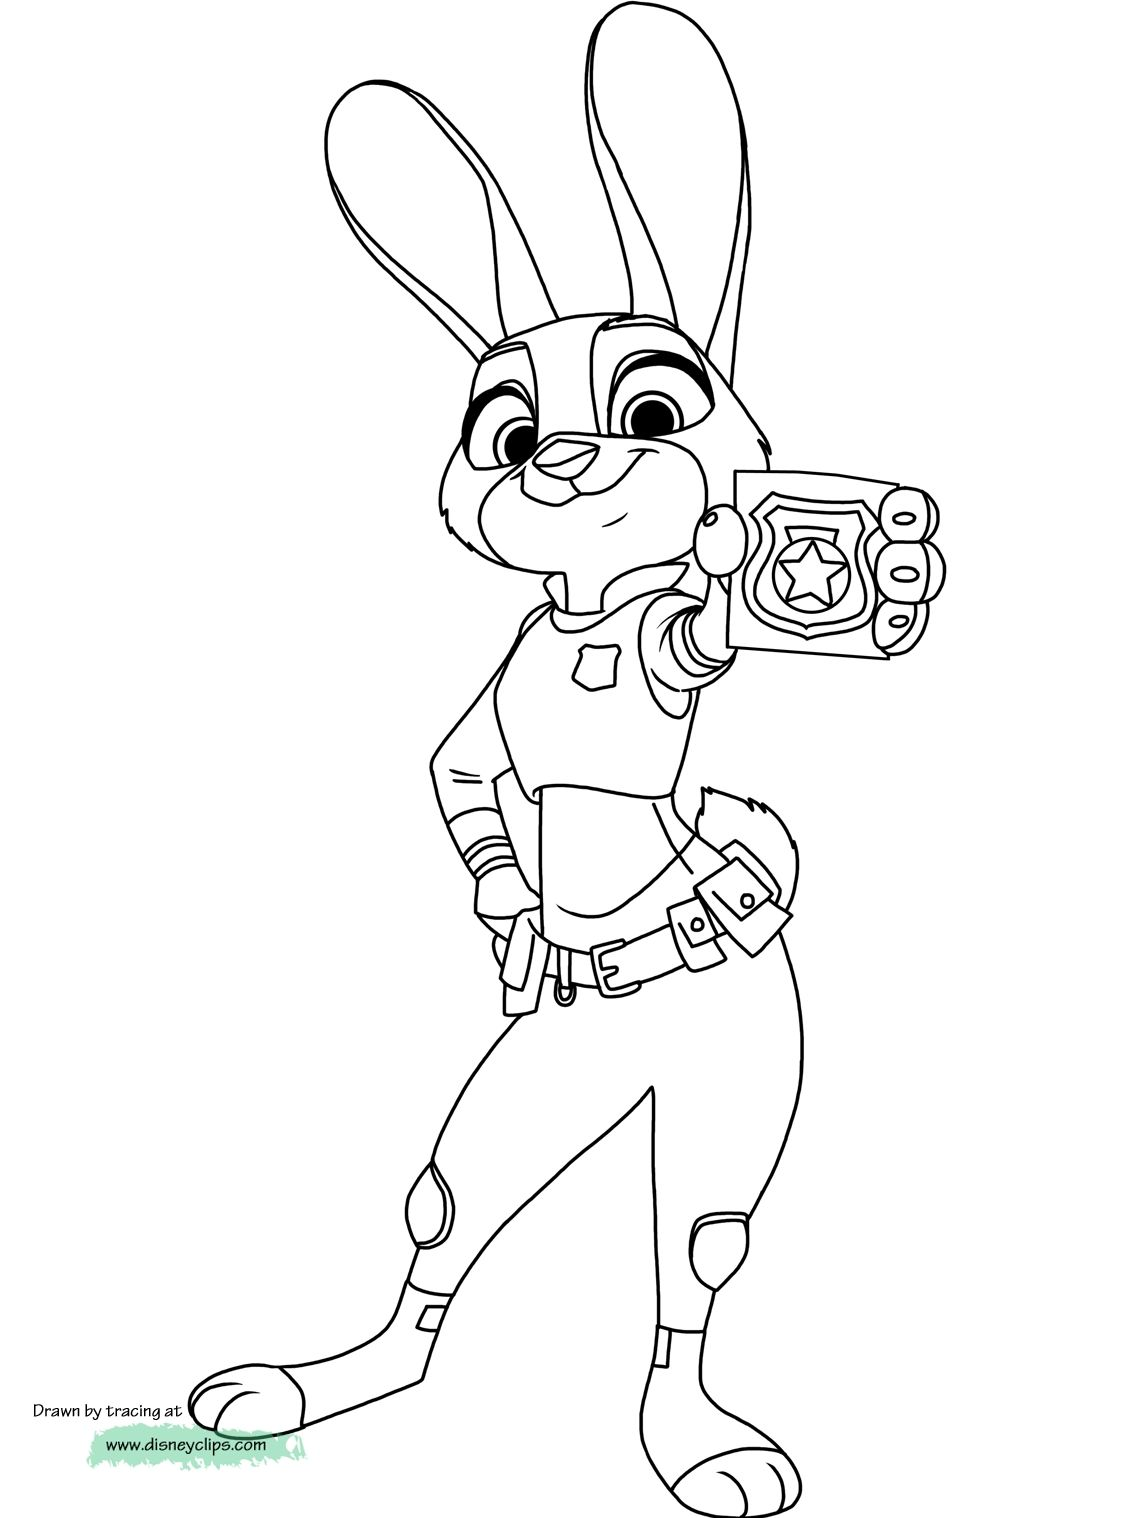 Judy Hopps Coloring Pages To Print Zootopia Coloring Pages Disney Coloring Pages Coloring Pages